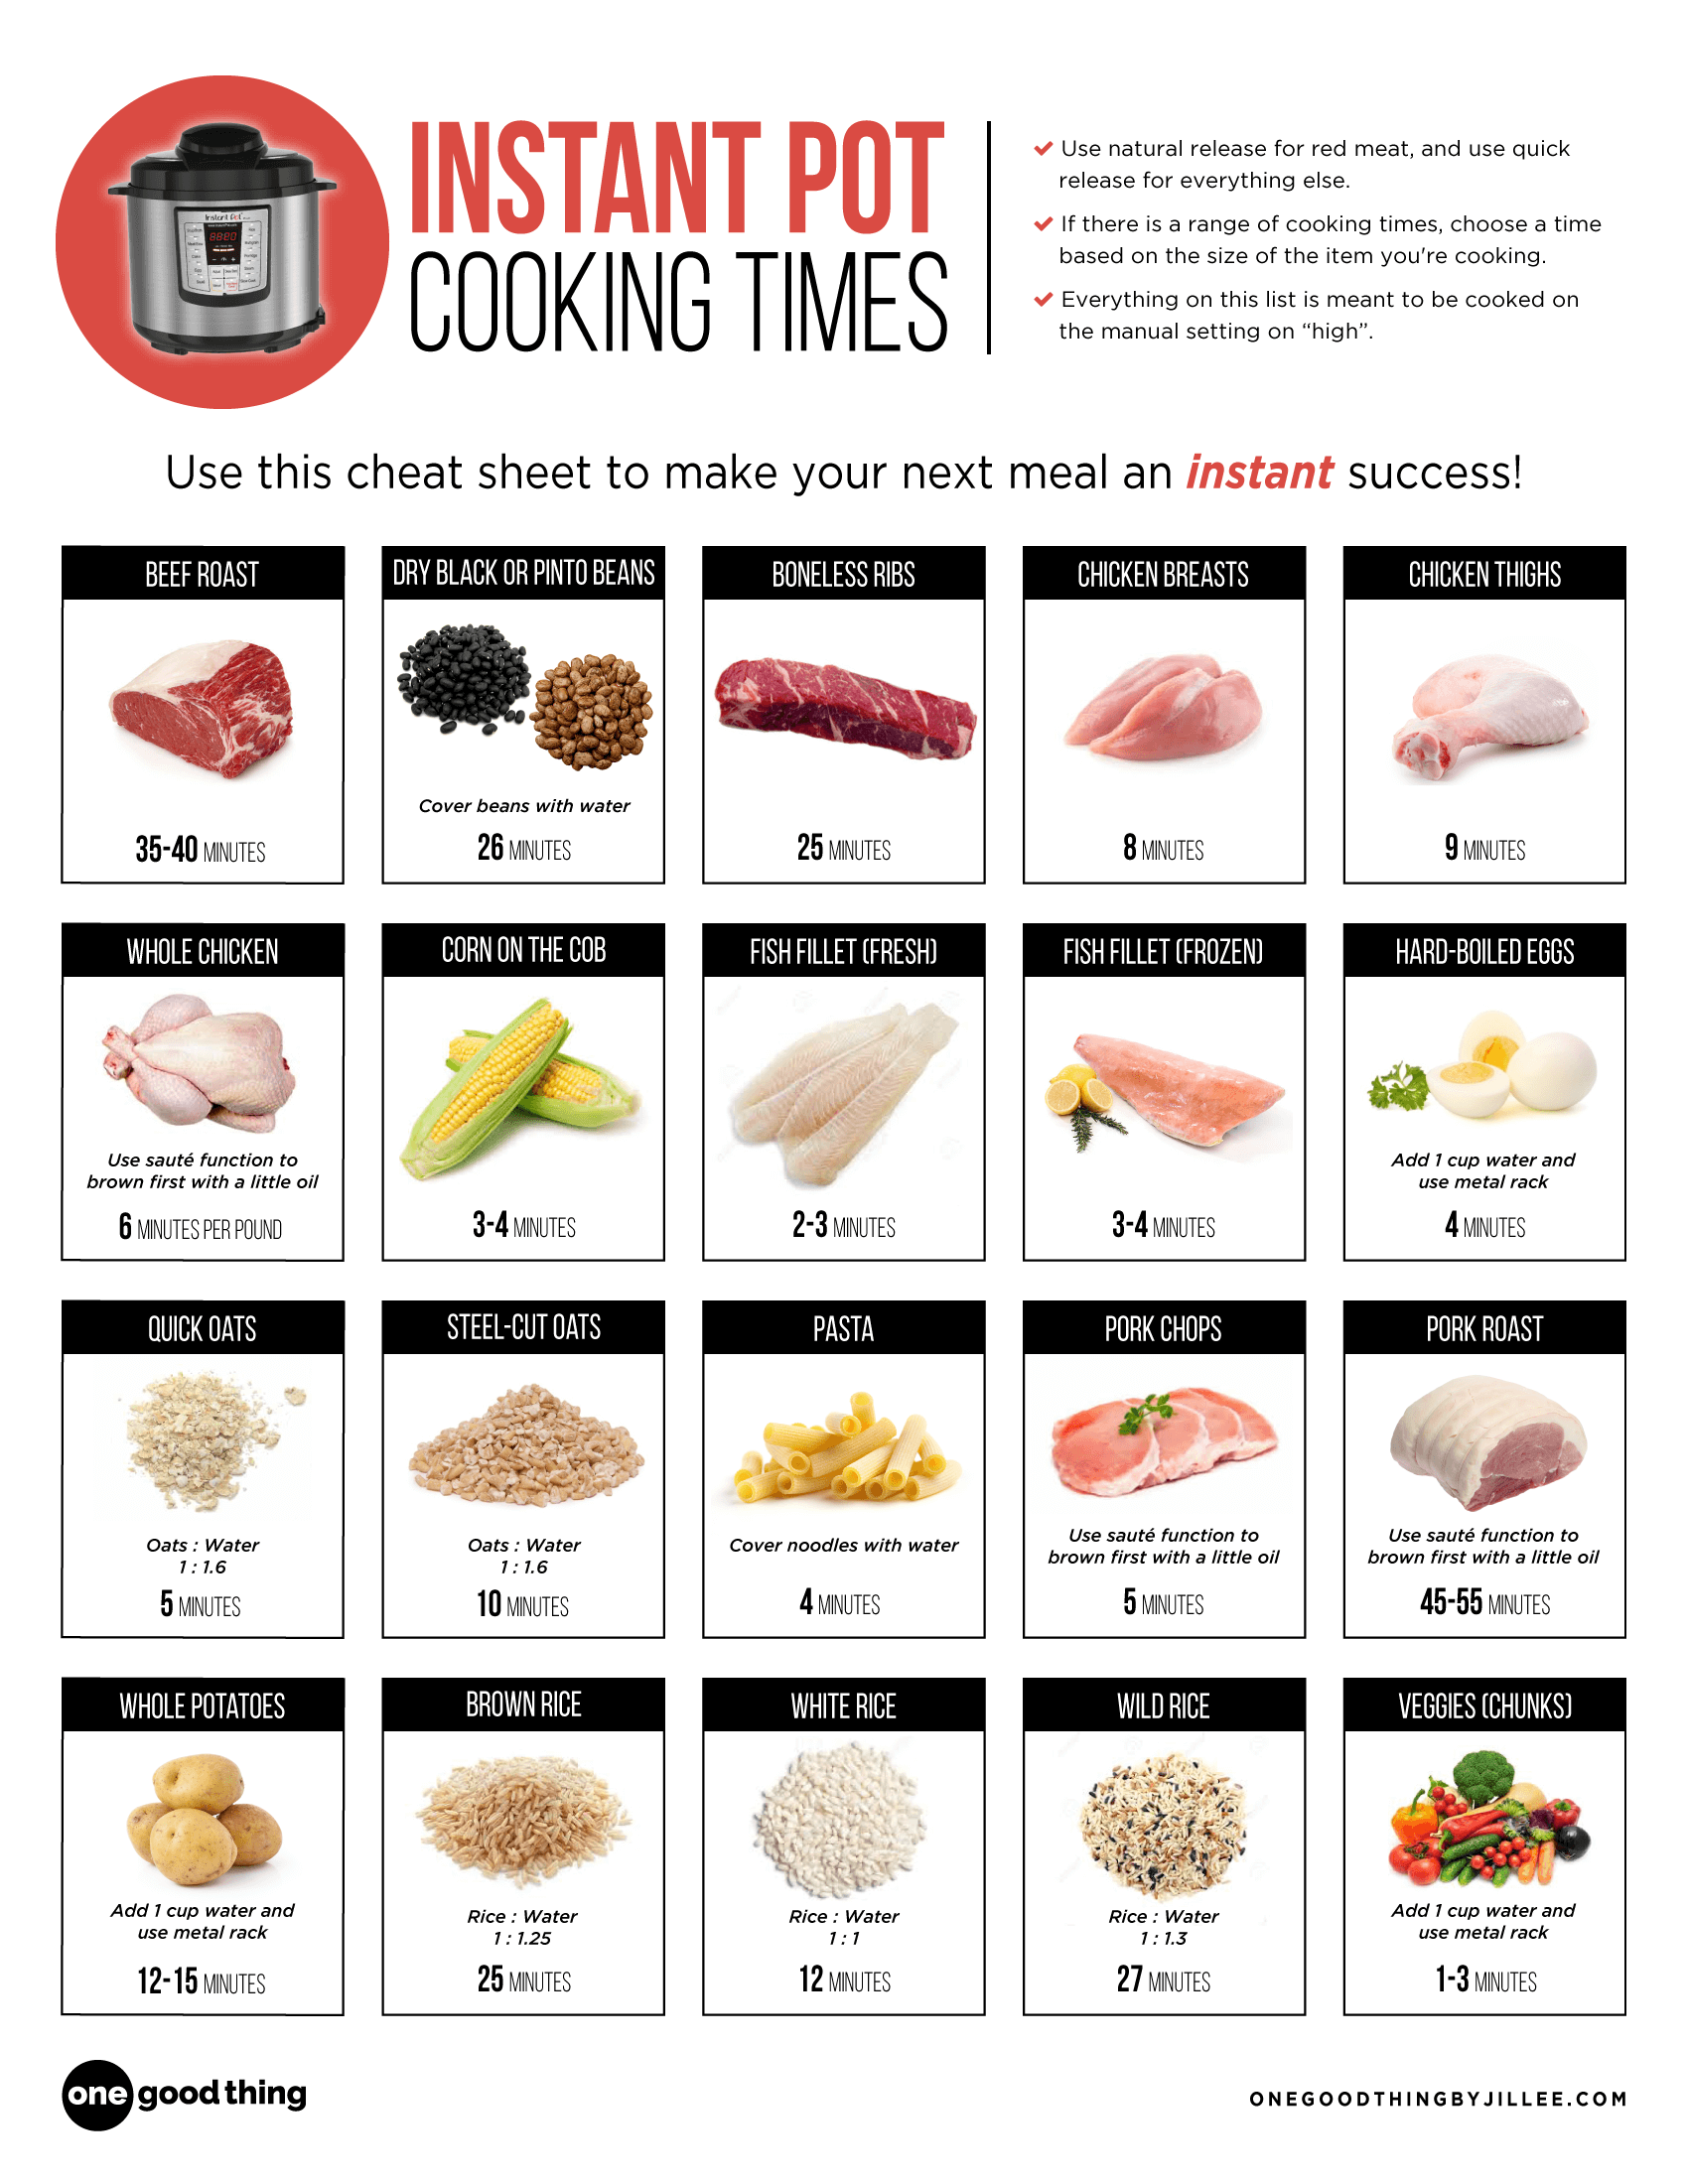 The Most Useful Instant Pot Cheat Sheet On the Web Just Got Better #instantpotrecipes